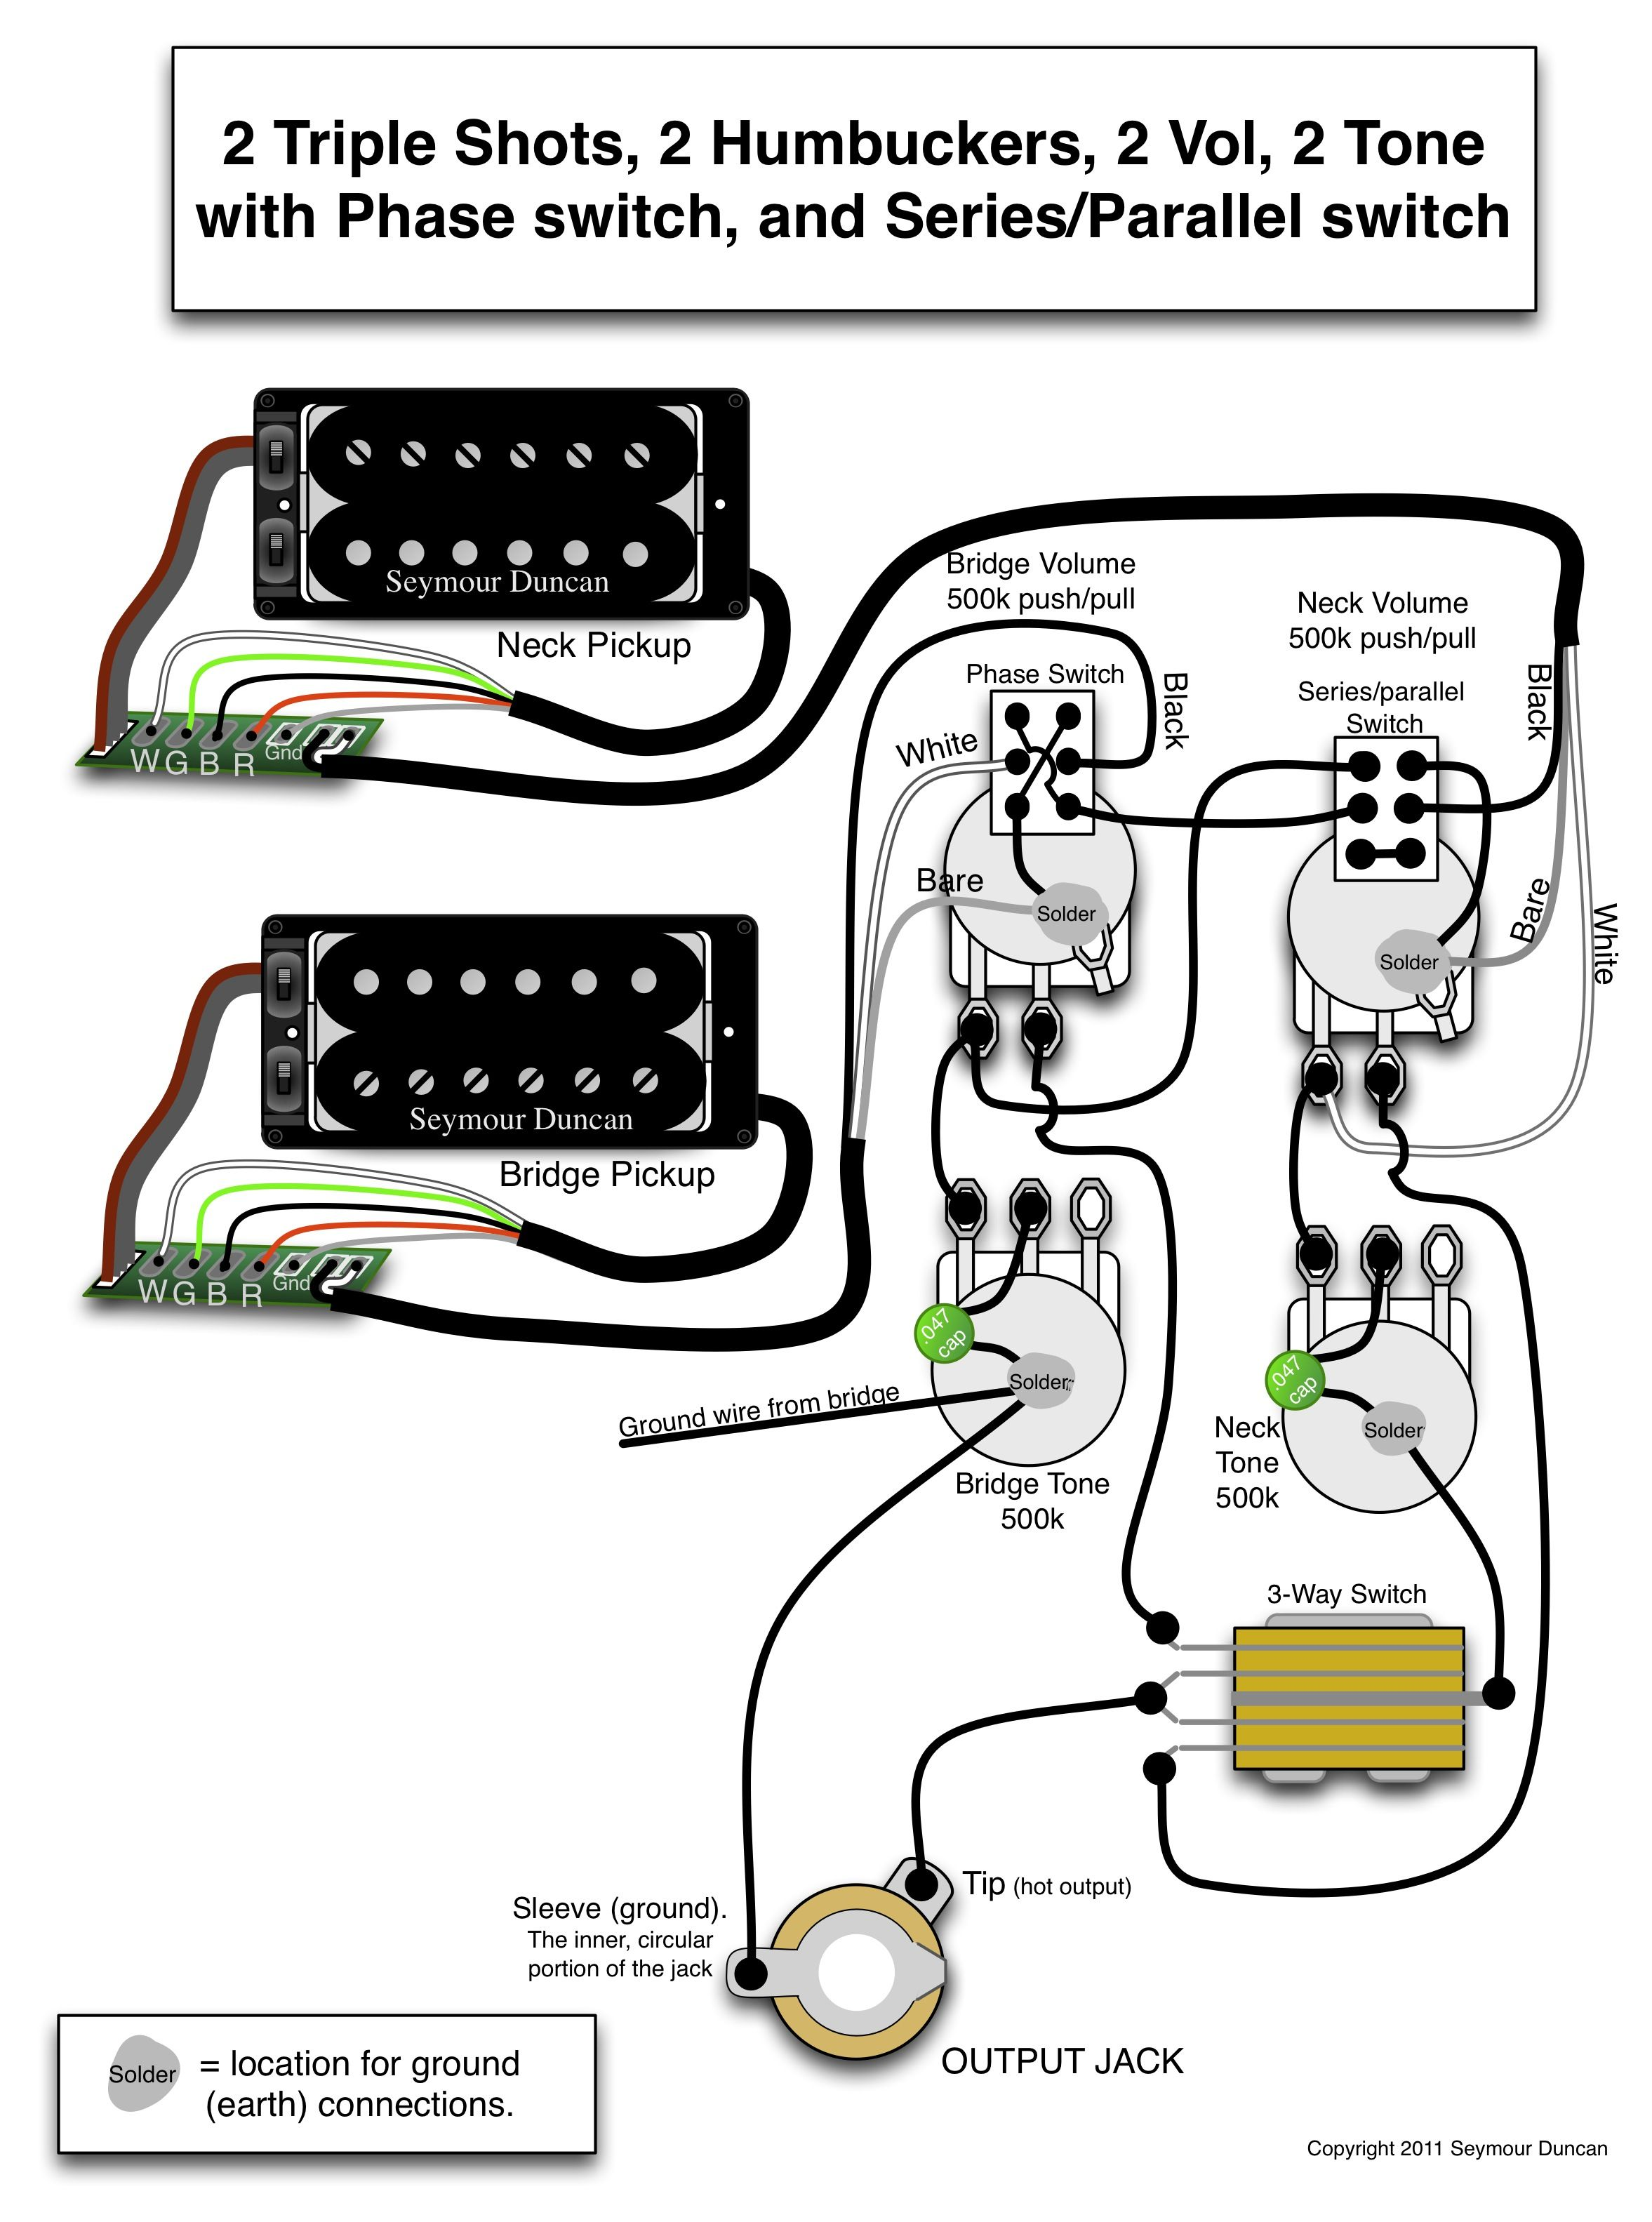 14dc4408abcf3c075a00cd280c1ea7ec seymour duncan wiring diagram 2 triple shots, 2 humbuckers, 2 seymour wiring diagram at virtualis.co